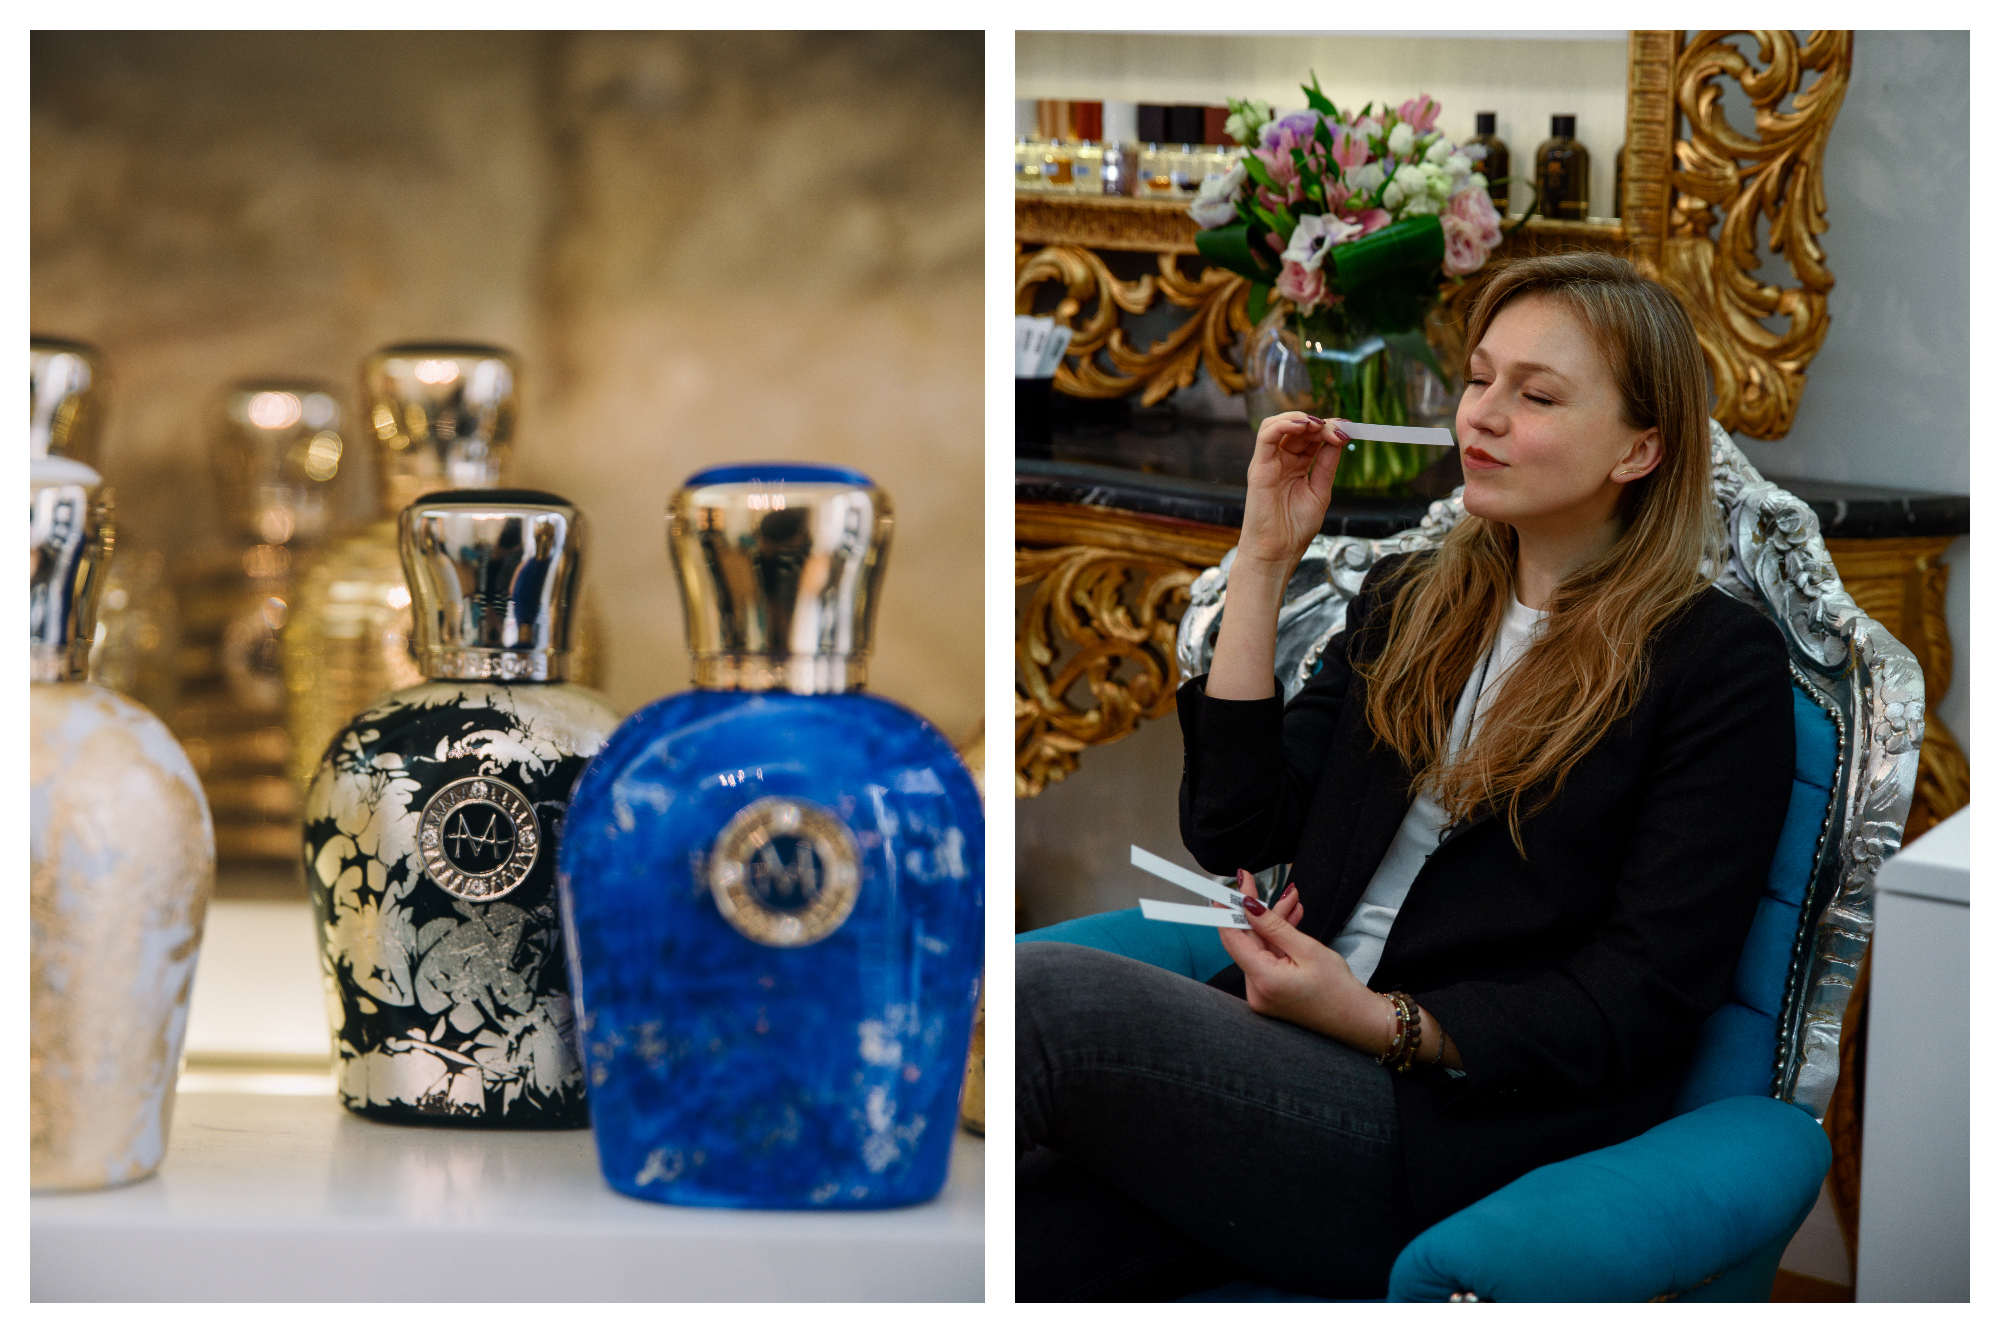 On left: Beautifully decorated jars of perfume sit on a counter, waiting to be tested at Sensory Unique, a shop specializing in stocking exclusive, niche perfumes in Paris. On right: A woman closes her eyes, concentrating on the smell of the perfume she samples at Sens Unique, a boutique specializing in niche perfume and finding your perfect scent.